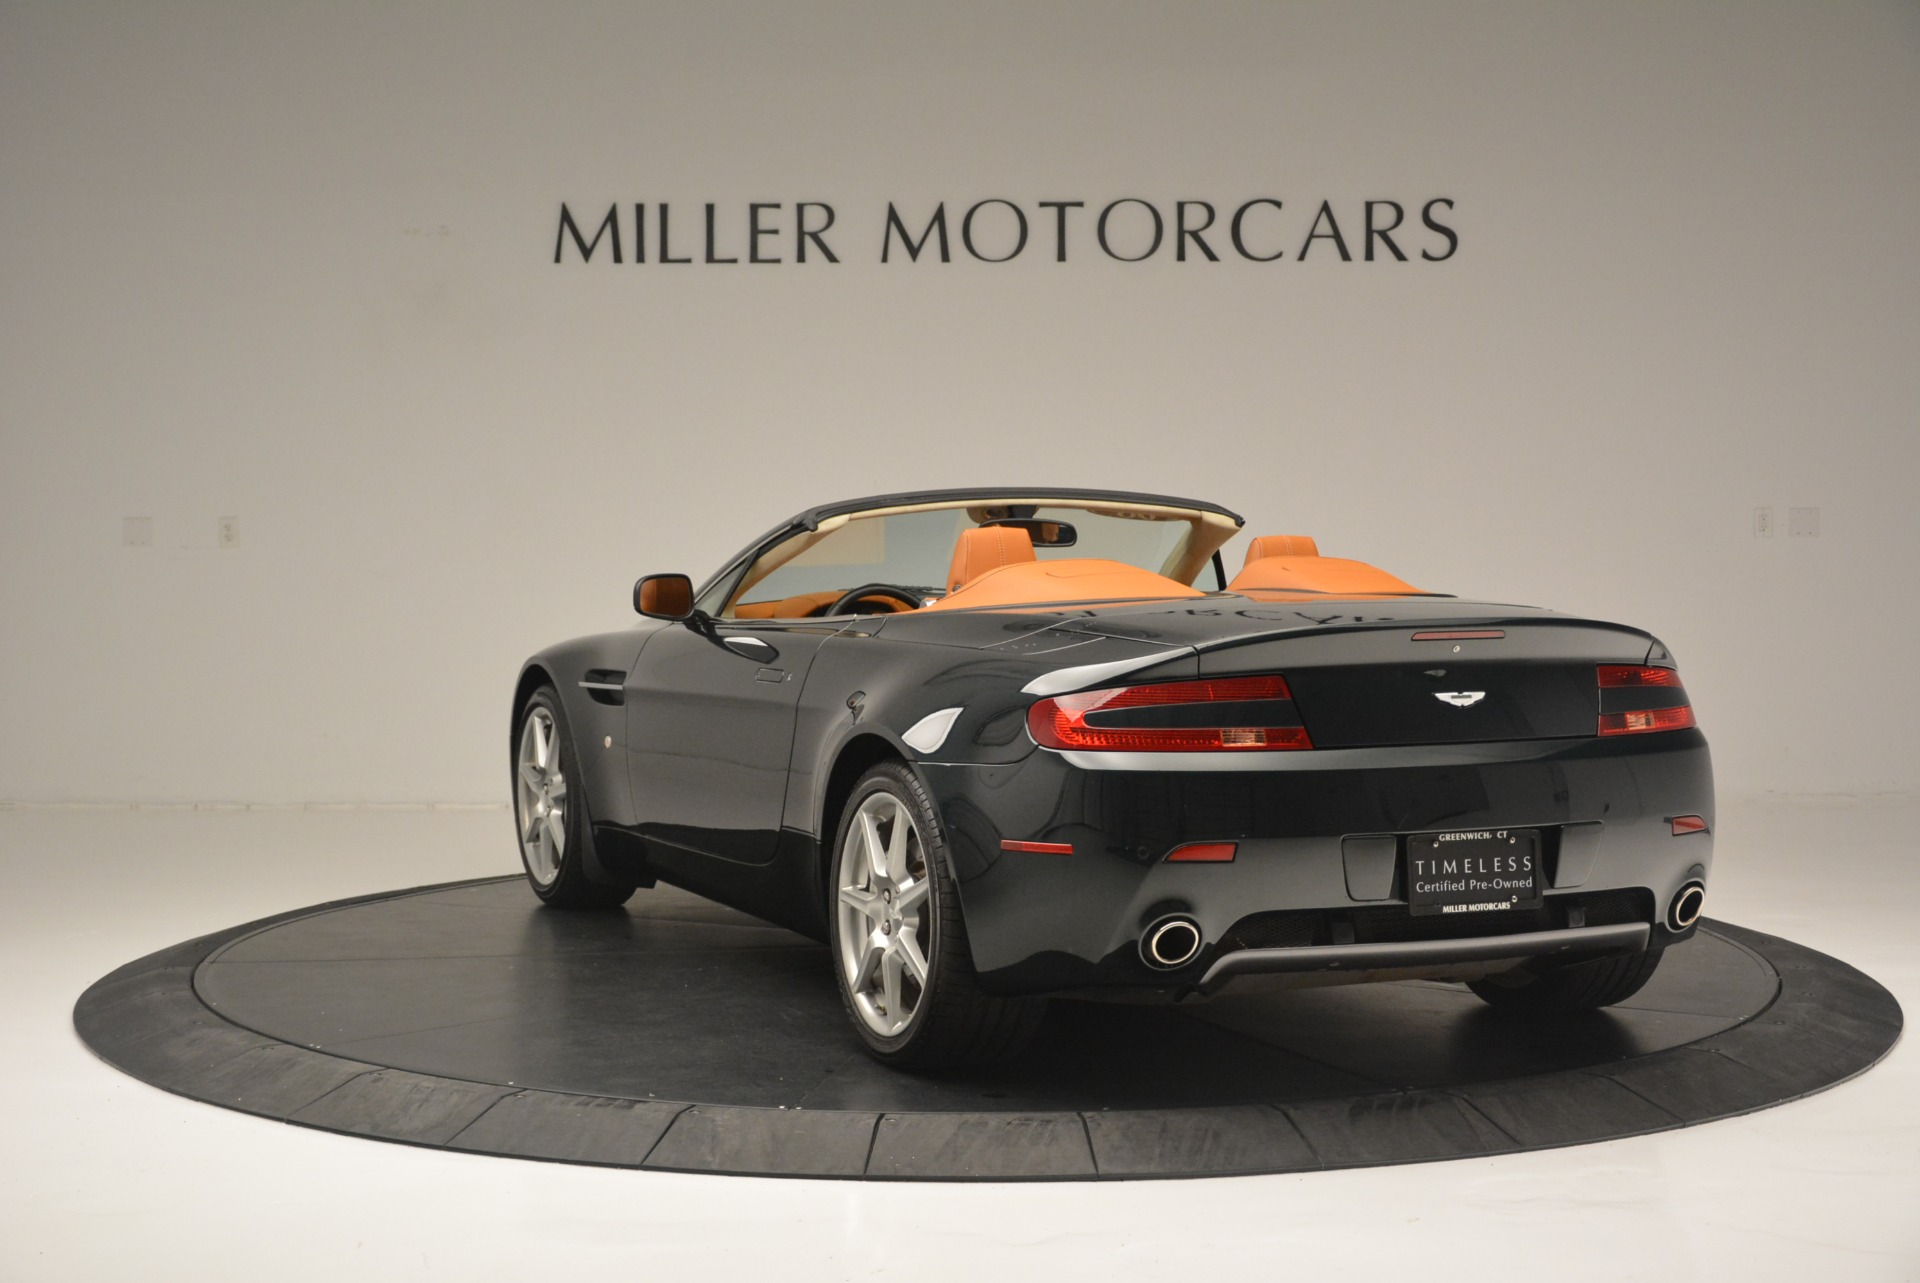 Used 2008 Aston Martin V8 Vantage Roadster For Sale In Westport, CT 2422_p5